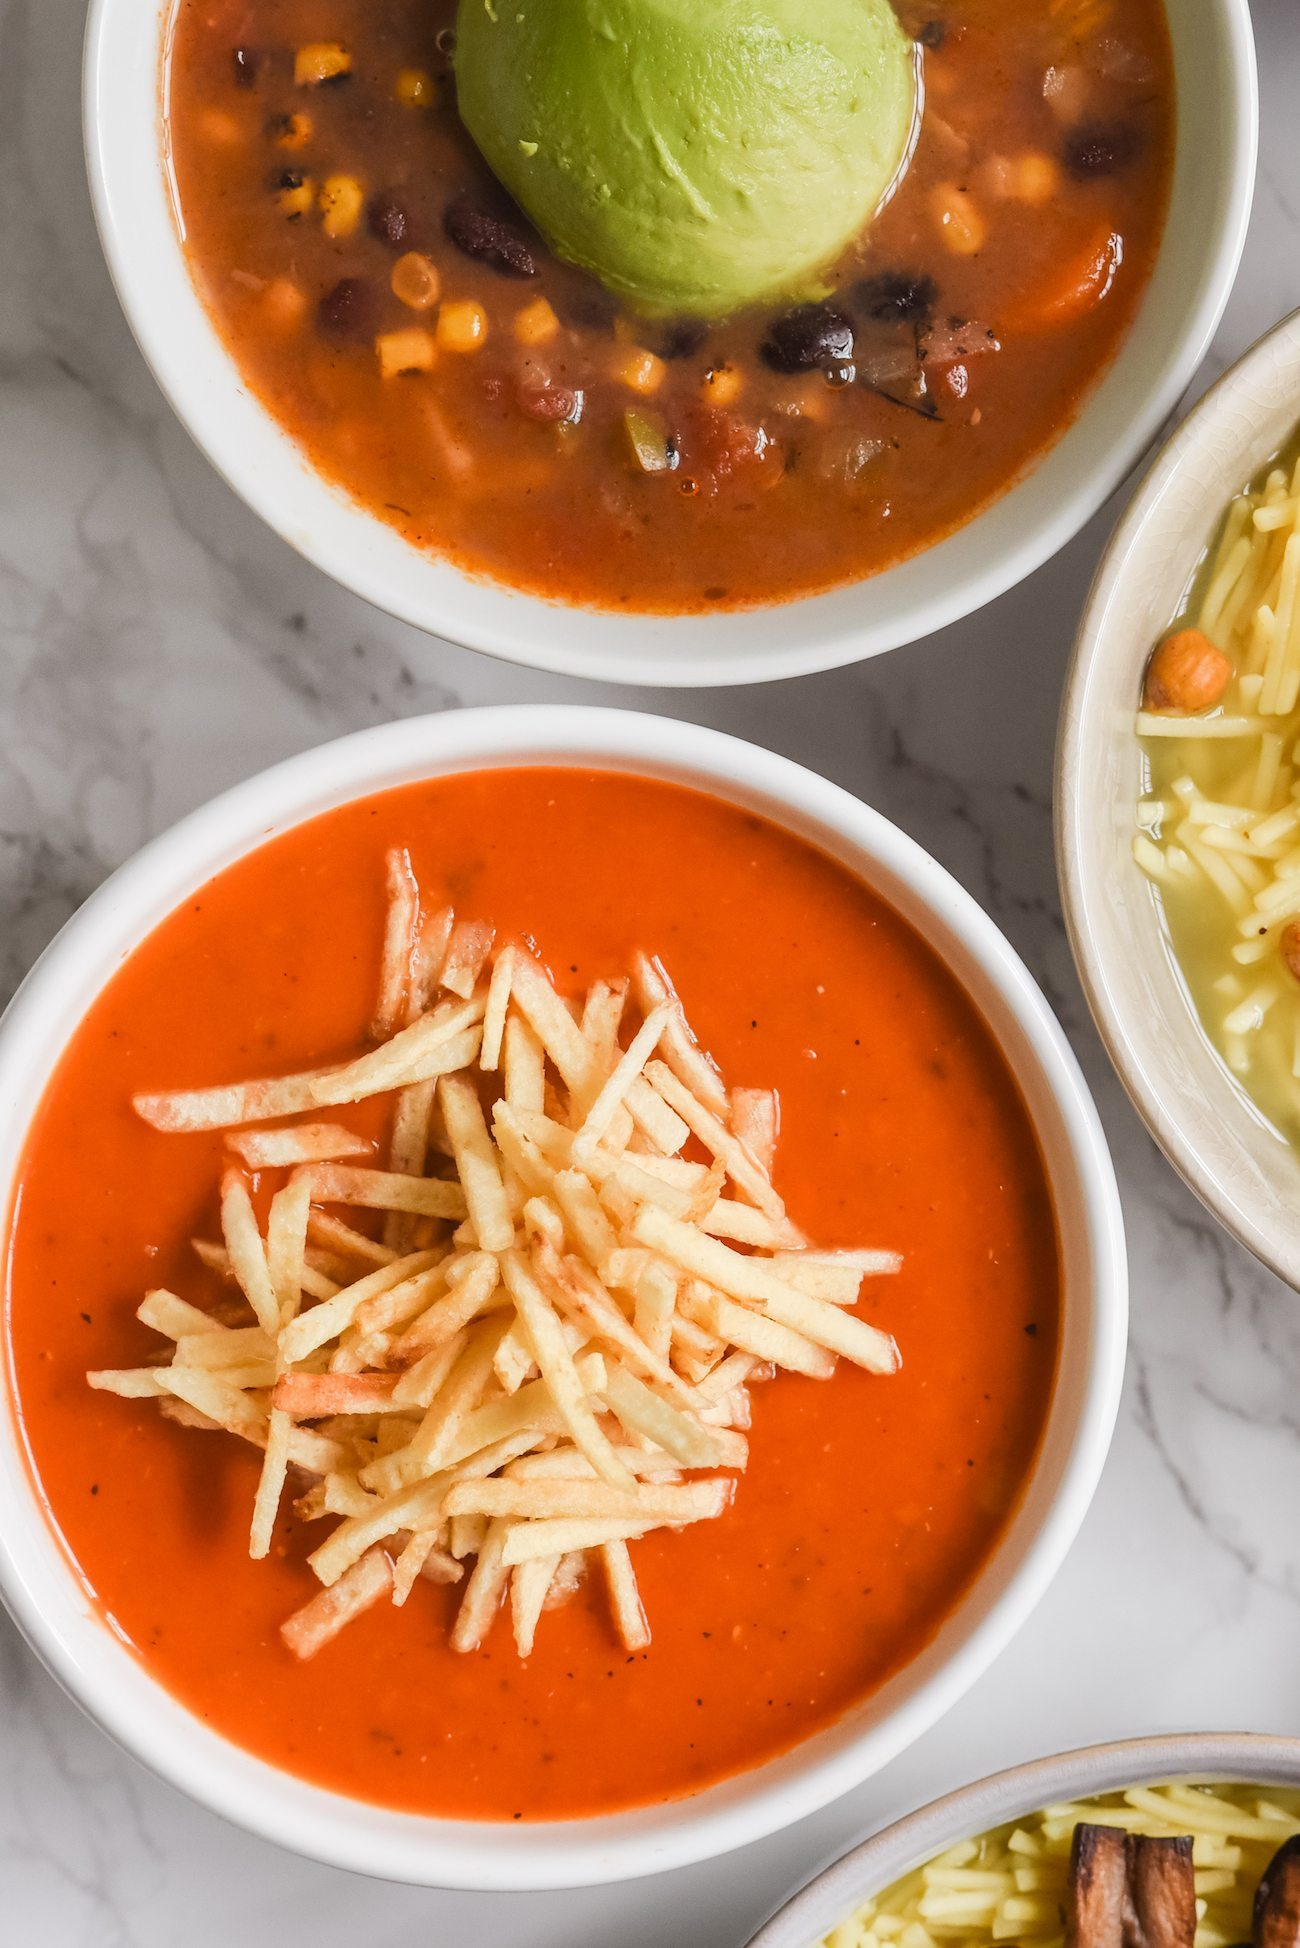 9 Seriously Scrumptious Soup Toppings | Entertaining ideas, hostess tips, party recipes, dinner party ideas and more from @cydconverse